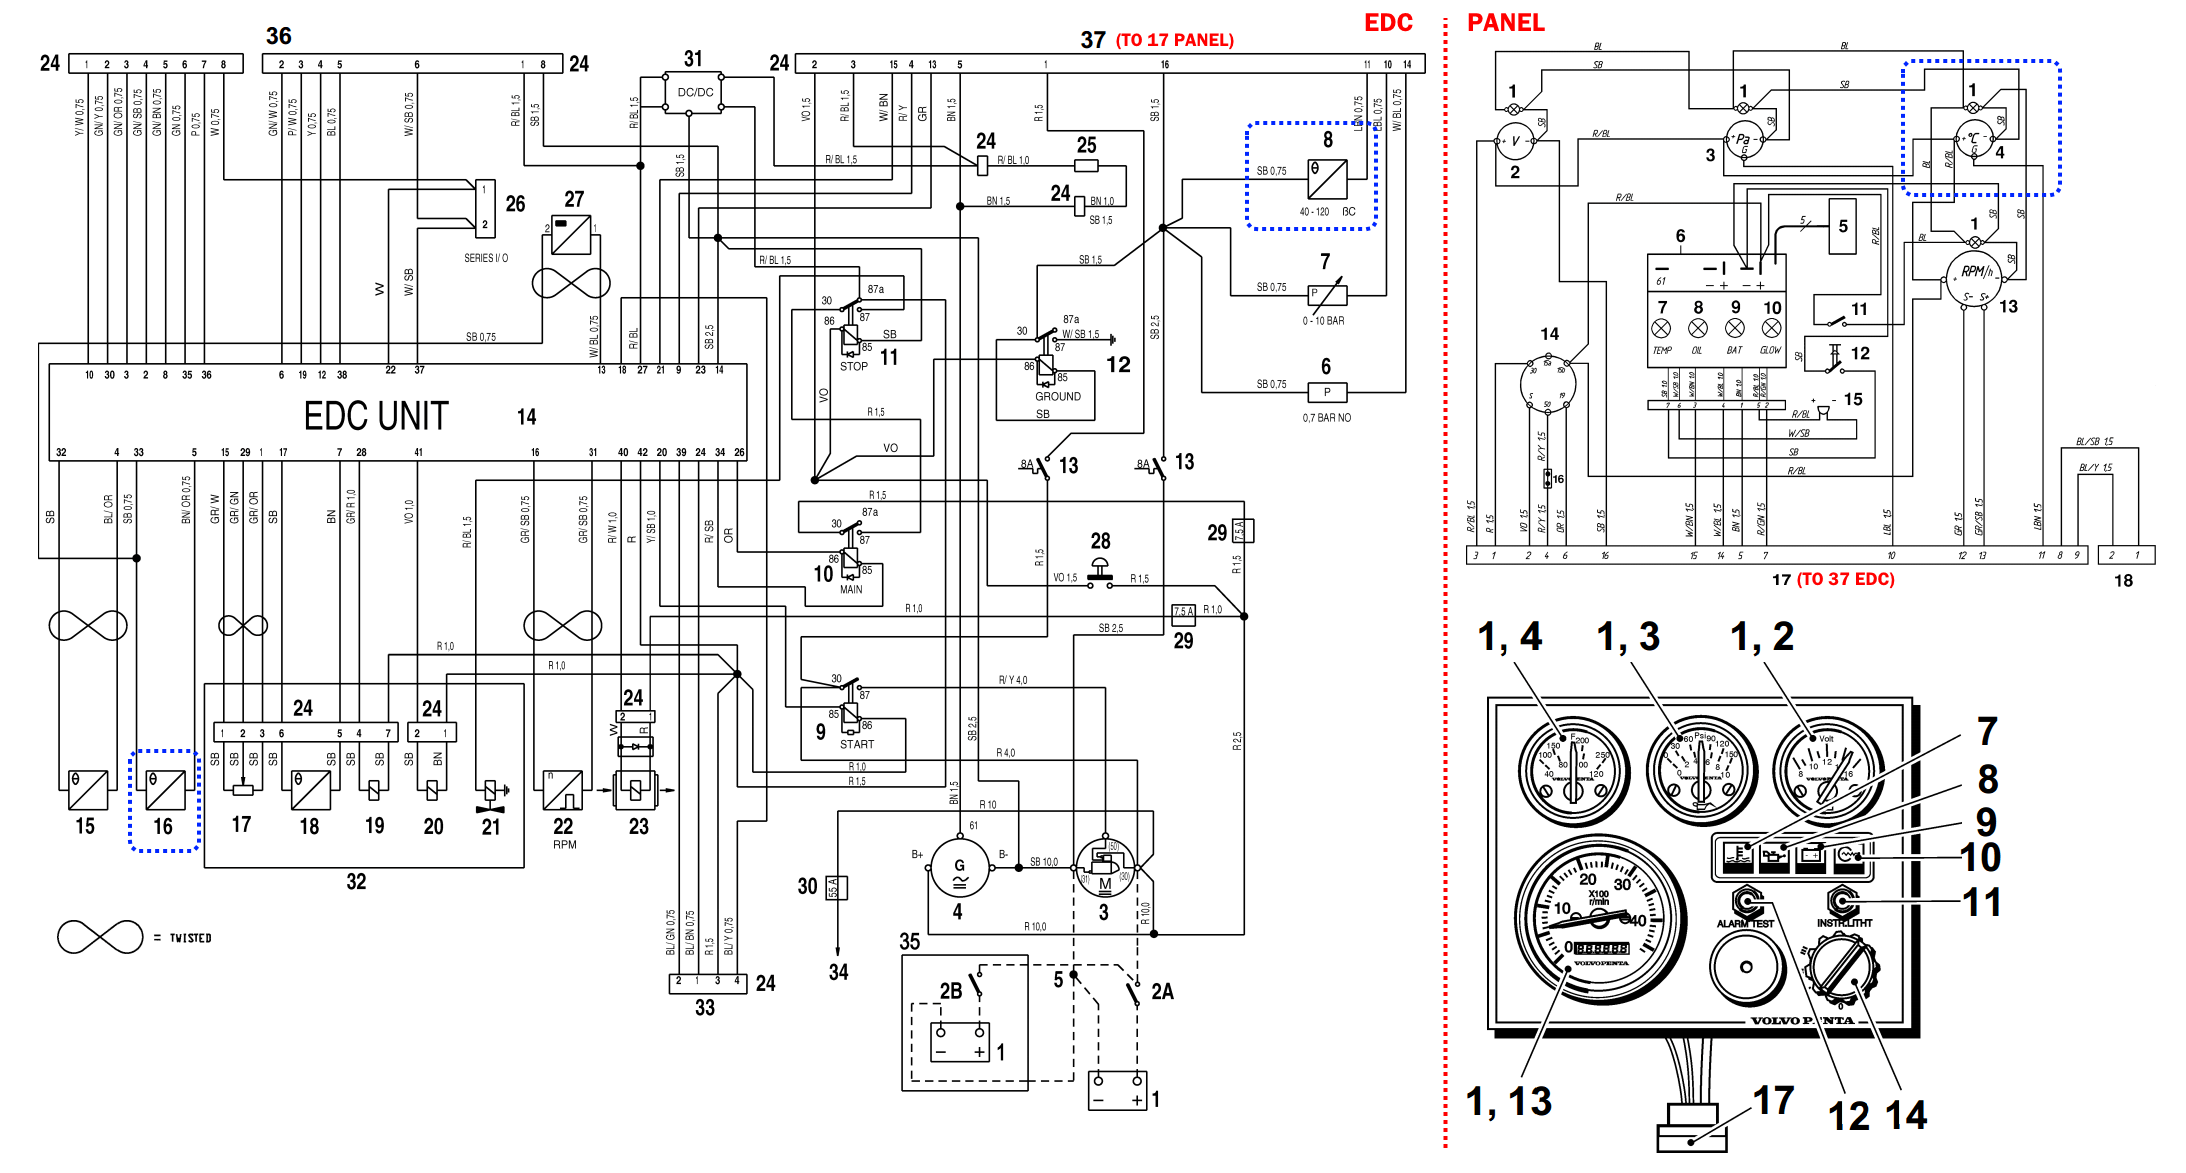 Volvo Penta Engine Wiring Diagram Model 190a. Volvo. Auto